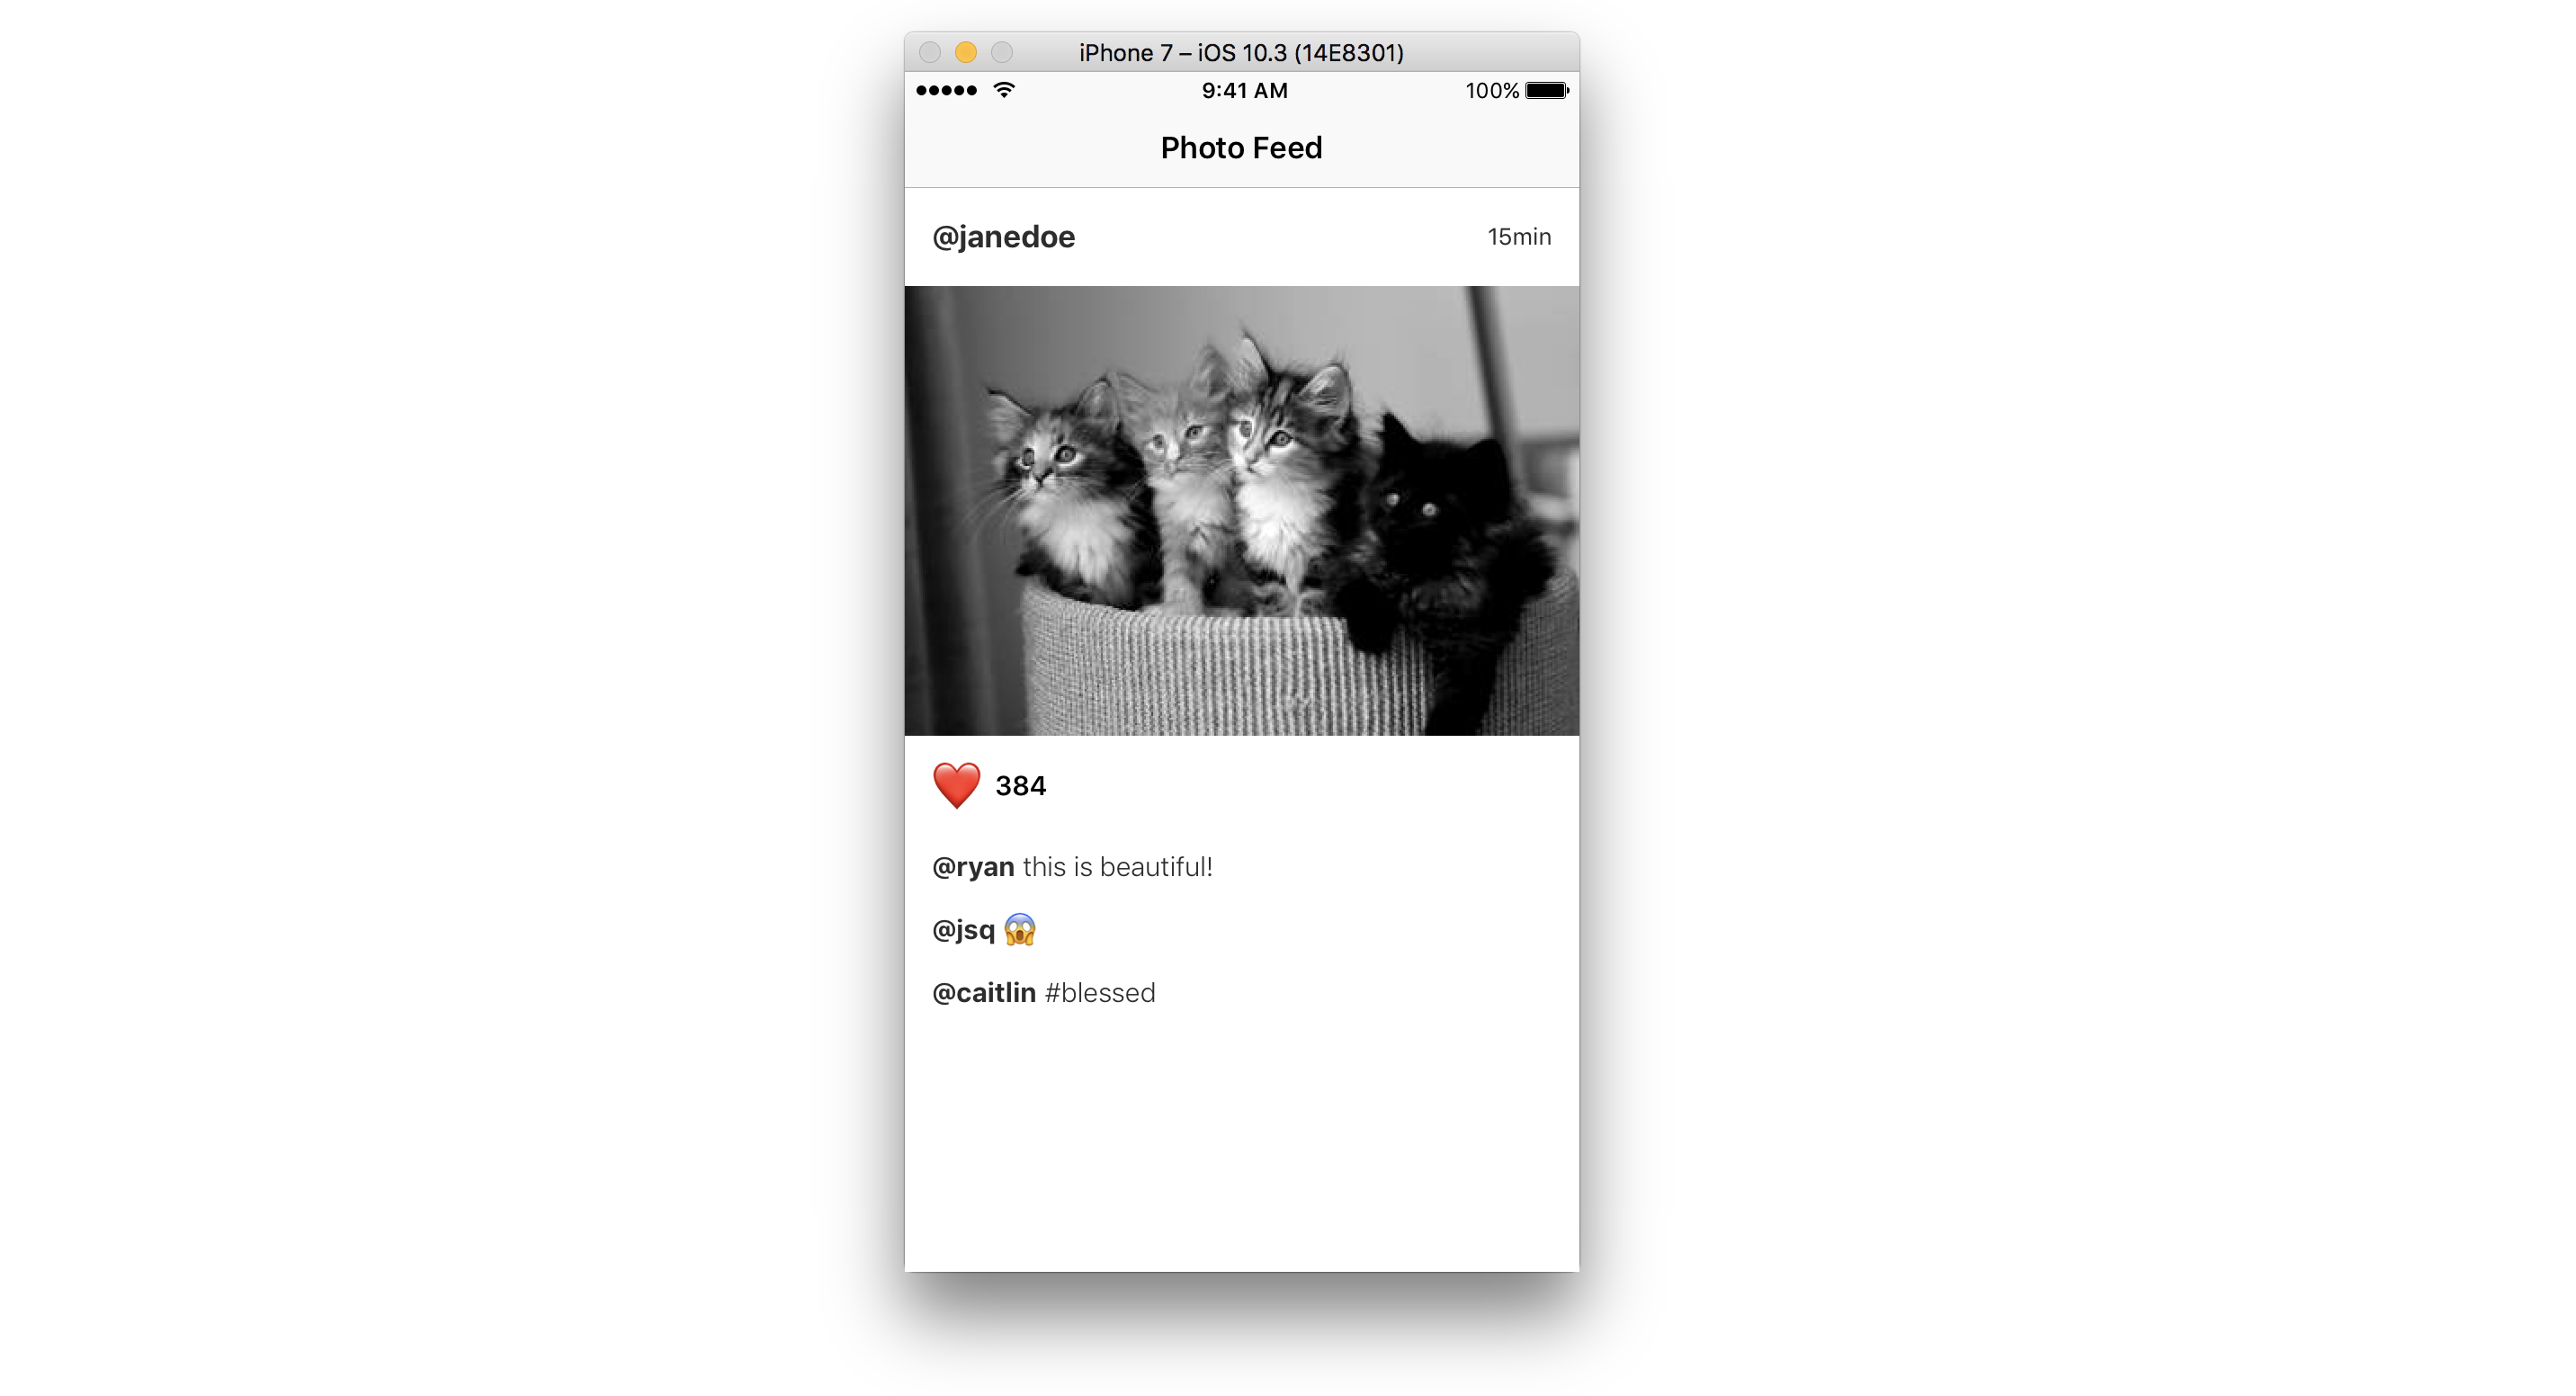 IGListKit/Modeling and Binding md at master · Instagram